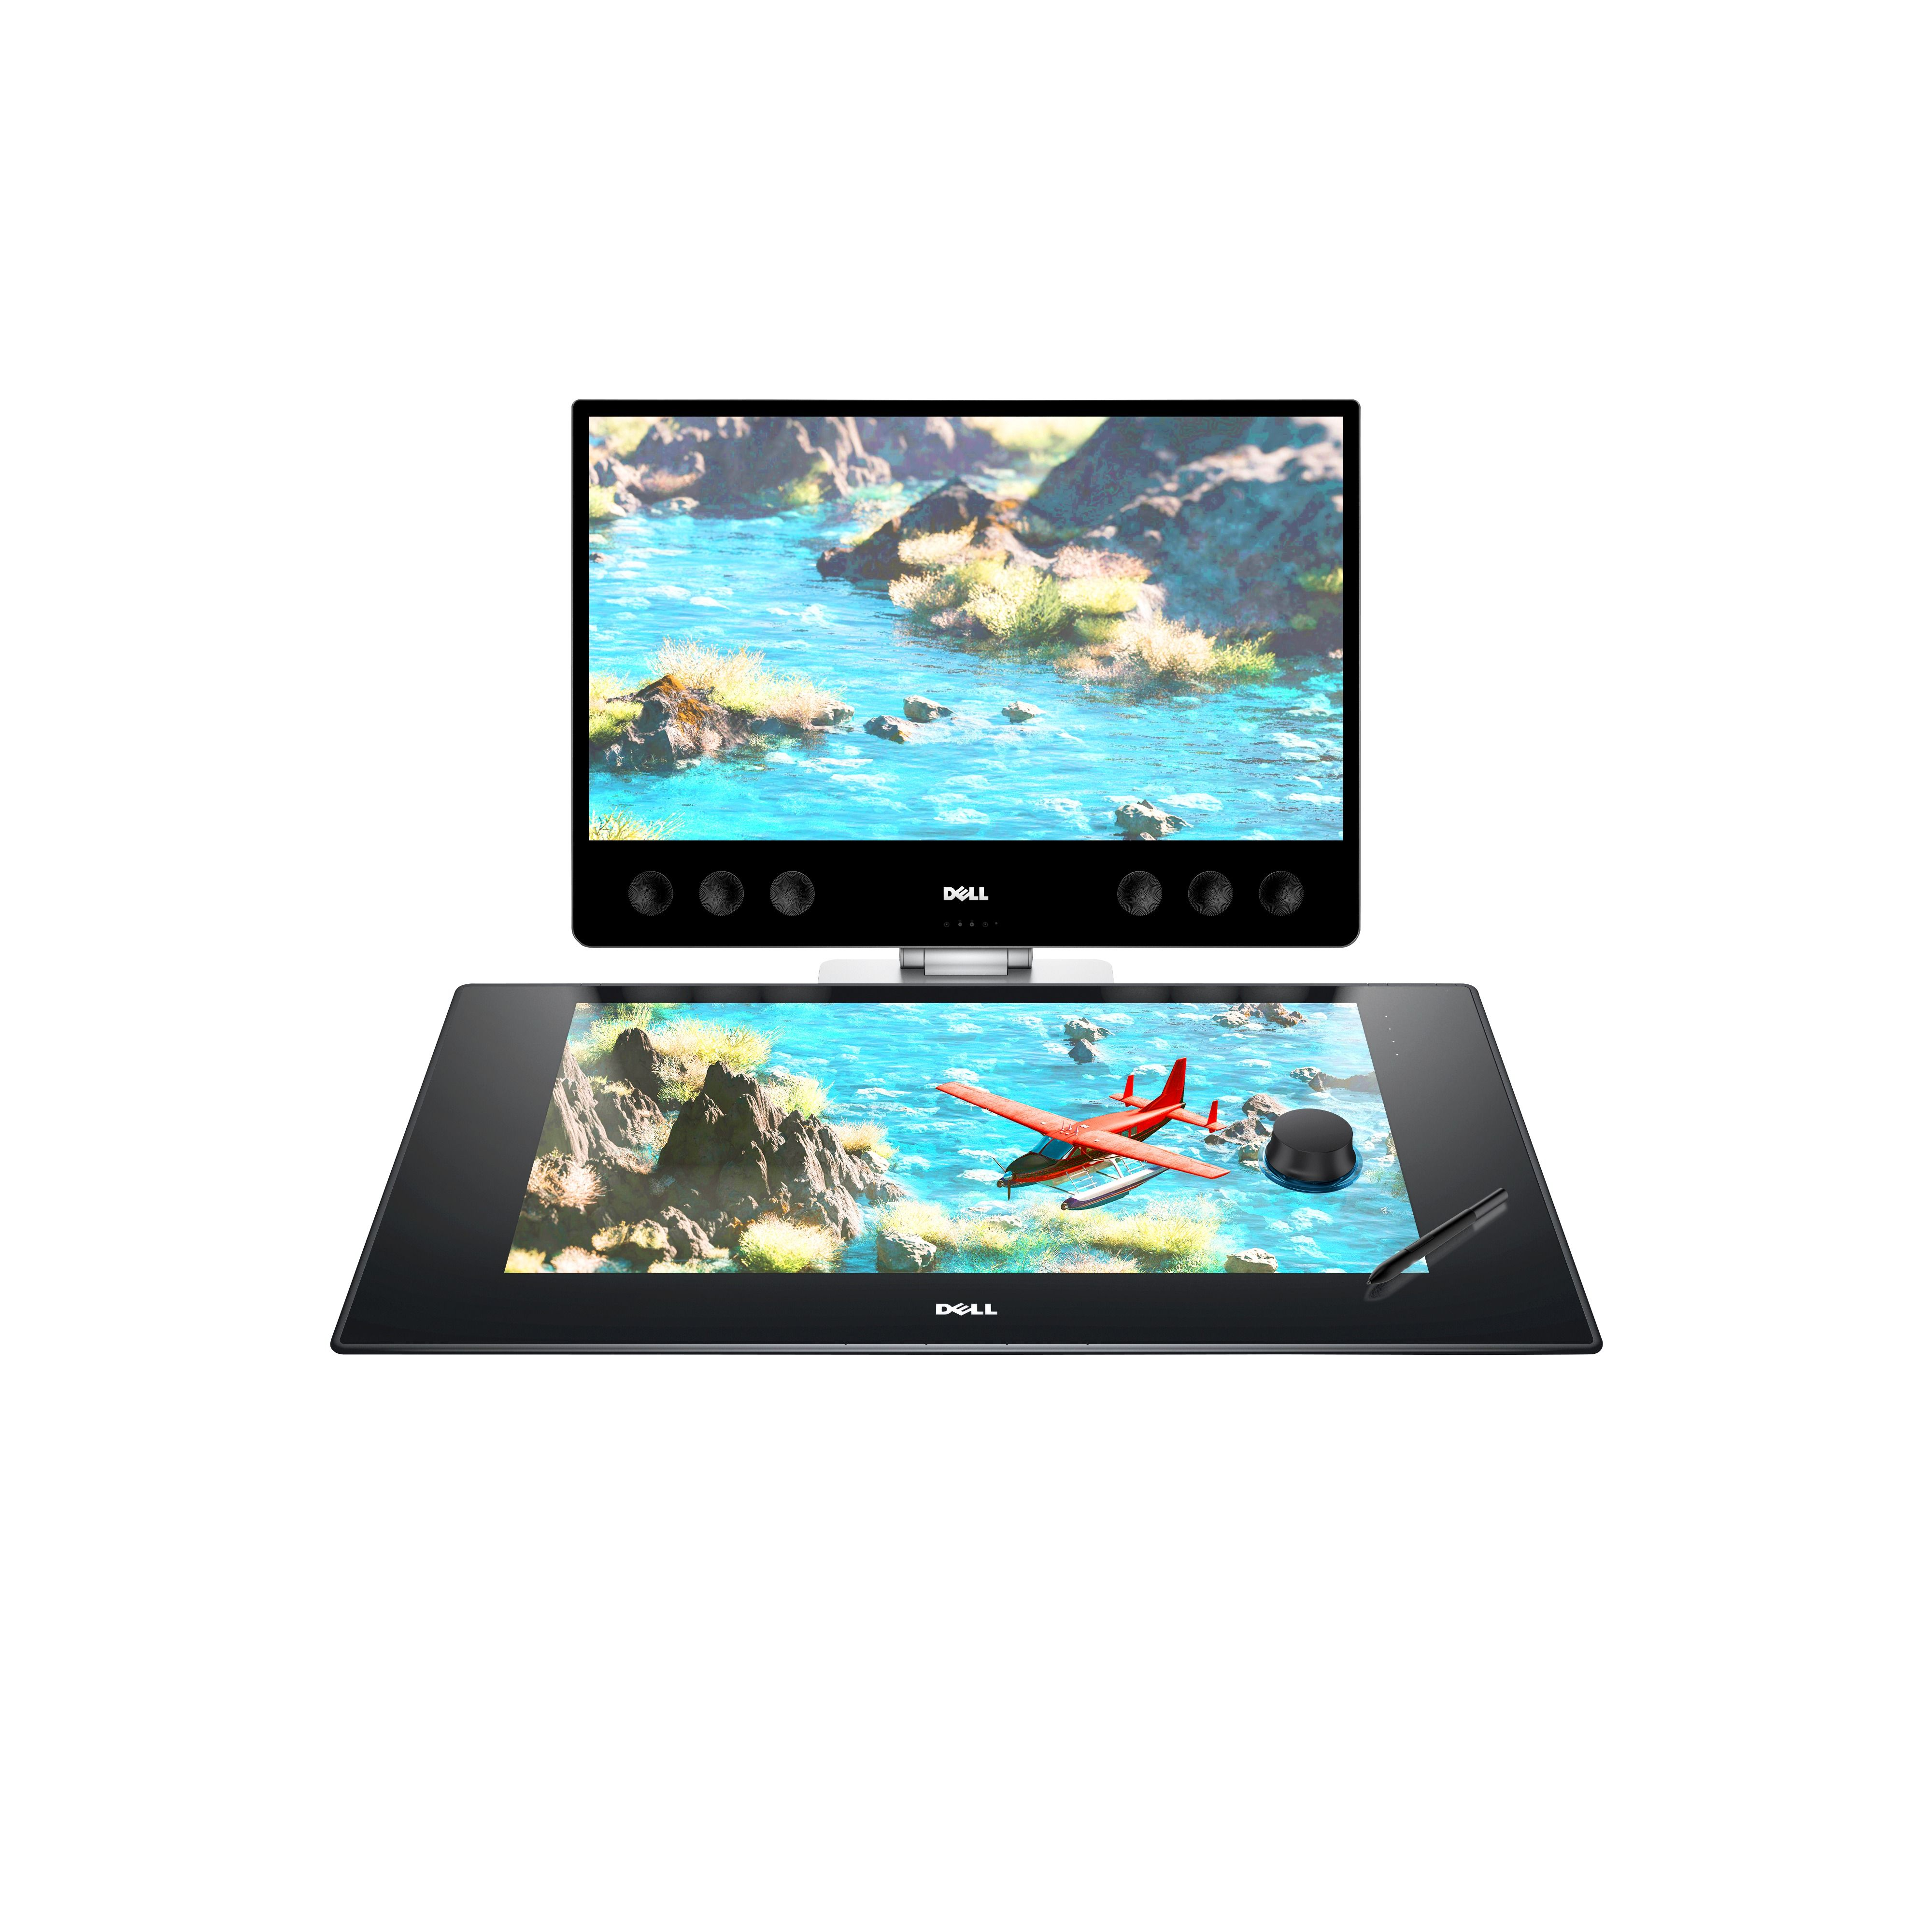 """<p>Trash cans filled with crumpled sketches can't compete against this Dell smart workspace, a 27-inch surface that uses a stylus and dial-like """"totem"""" to turn your visions into reality.</p><p><em data-redactor-tag=""""em"""" data-verified=""""redactor"""">Dell, $1,799</em></p><p><strong data-redactor-tag=""""strong"""" data-verified=""""redactor"""">BUY IT: <a href=""""http://www.dell.com/en-us/work/shop/workstations-isv-certified-dell/dell-canvas-27/spd/dell-canvas-kv2718d/s001pdc27us"""" target=""""_blank"""" data-tracking-id=""""recirc-text-link"""">dell.com</a>.</strong></p>"""